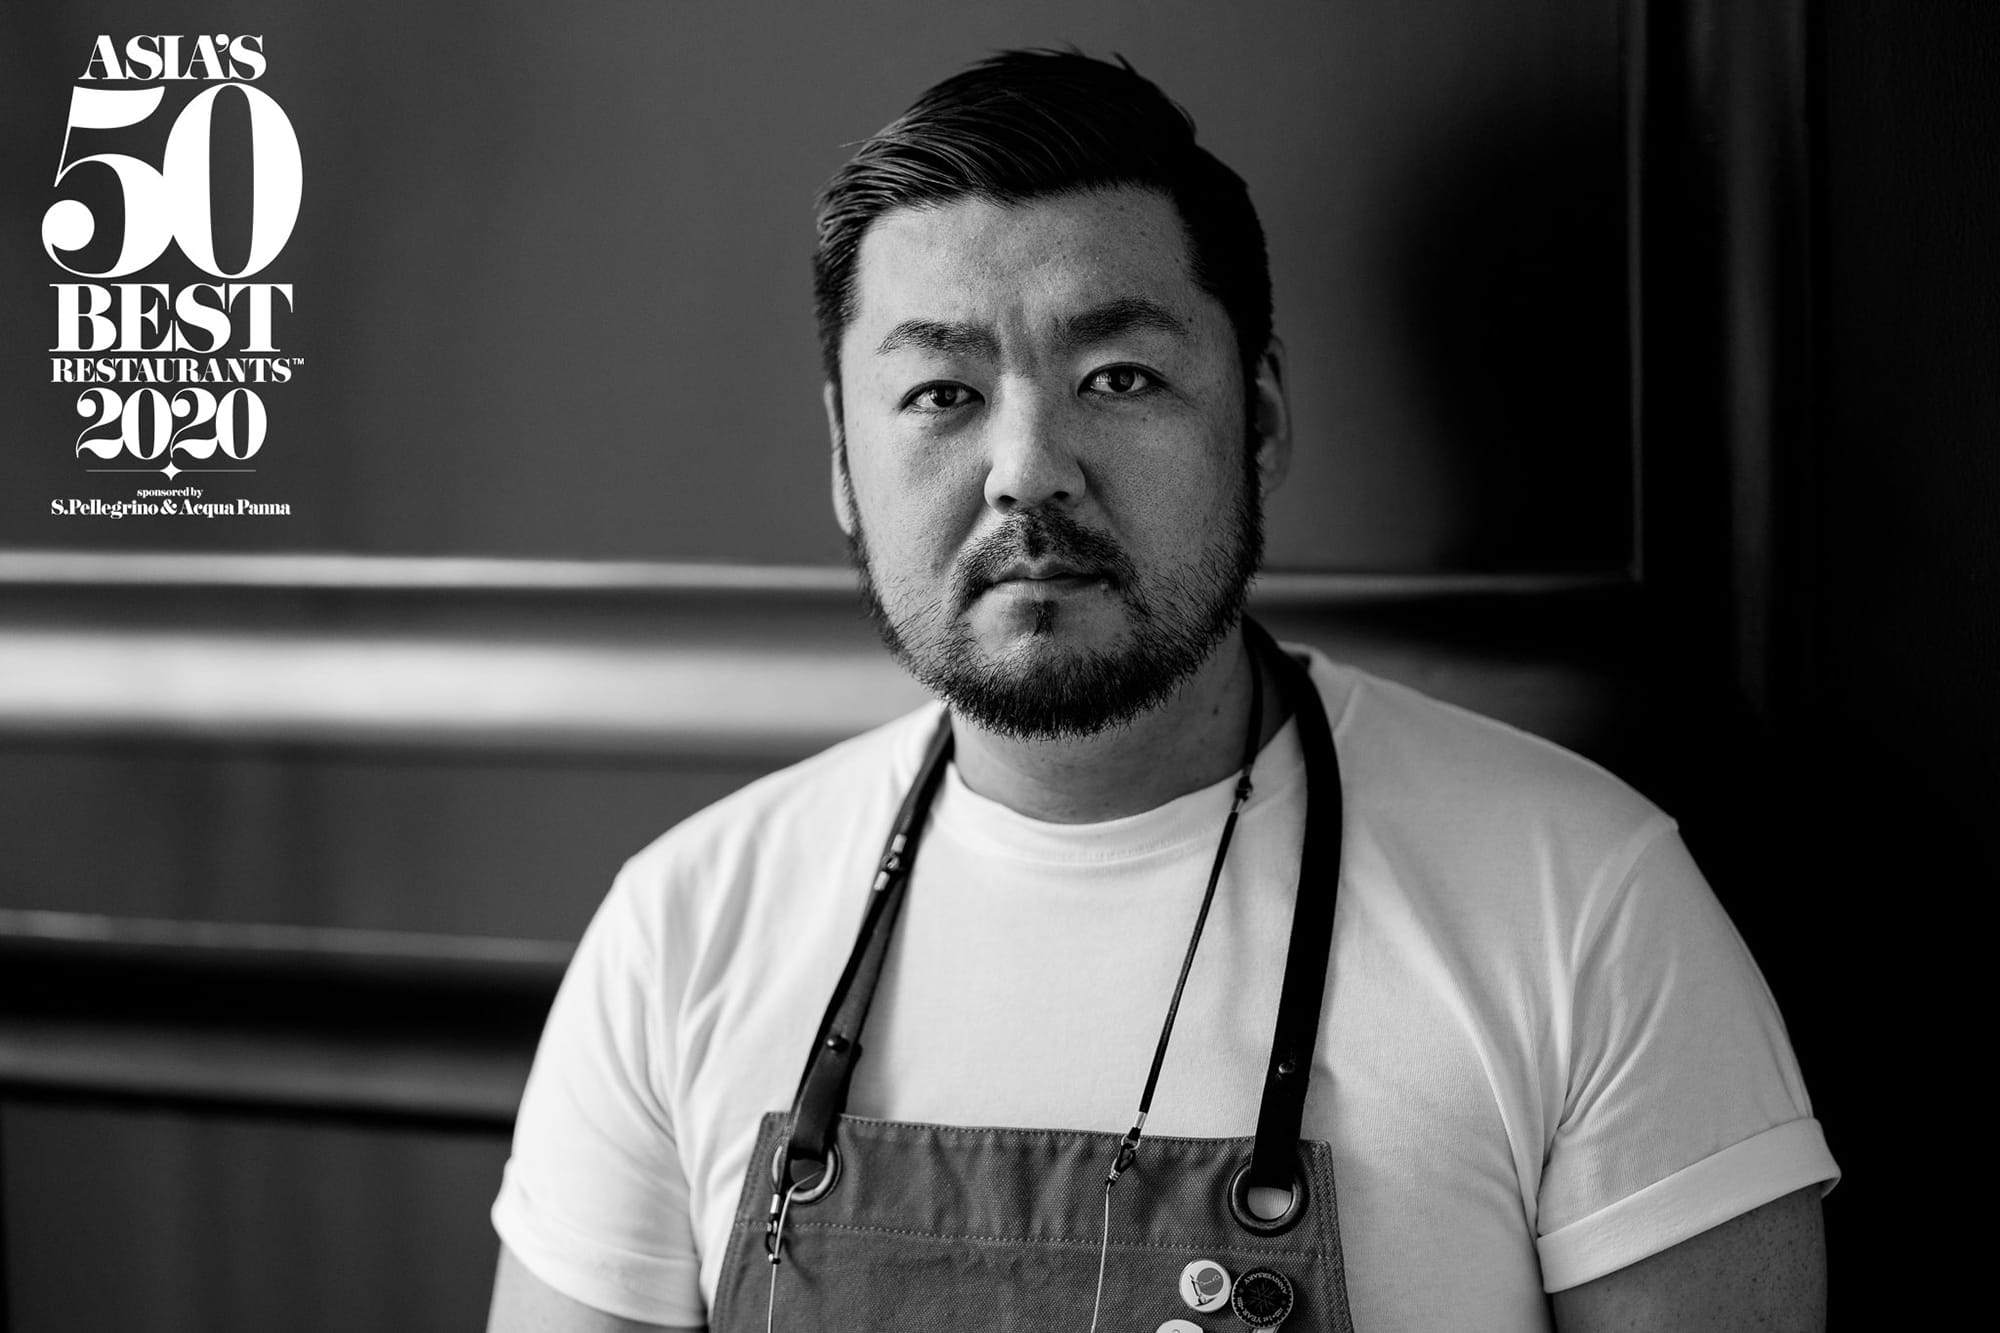 """La Cime was ranked as 17th place in 2018, the restaurant climbed up to become 14th place the following year, and this year the restaurant has reached 10th place. Yusuke Takada, head chef of La Cime, said, """"The Chefs' Choice Award is a proof that my chef peers have supported me. This makes me even happier than the result of the rankings""""."""